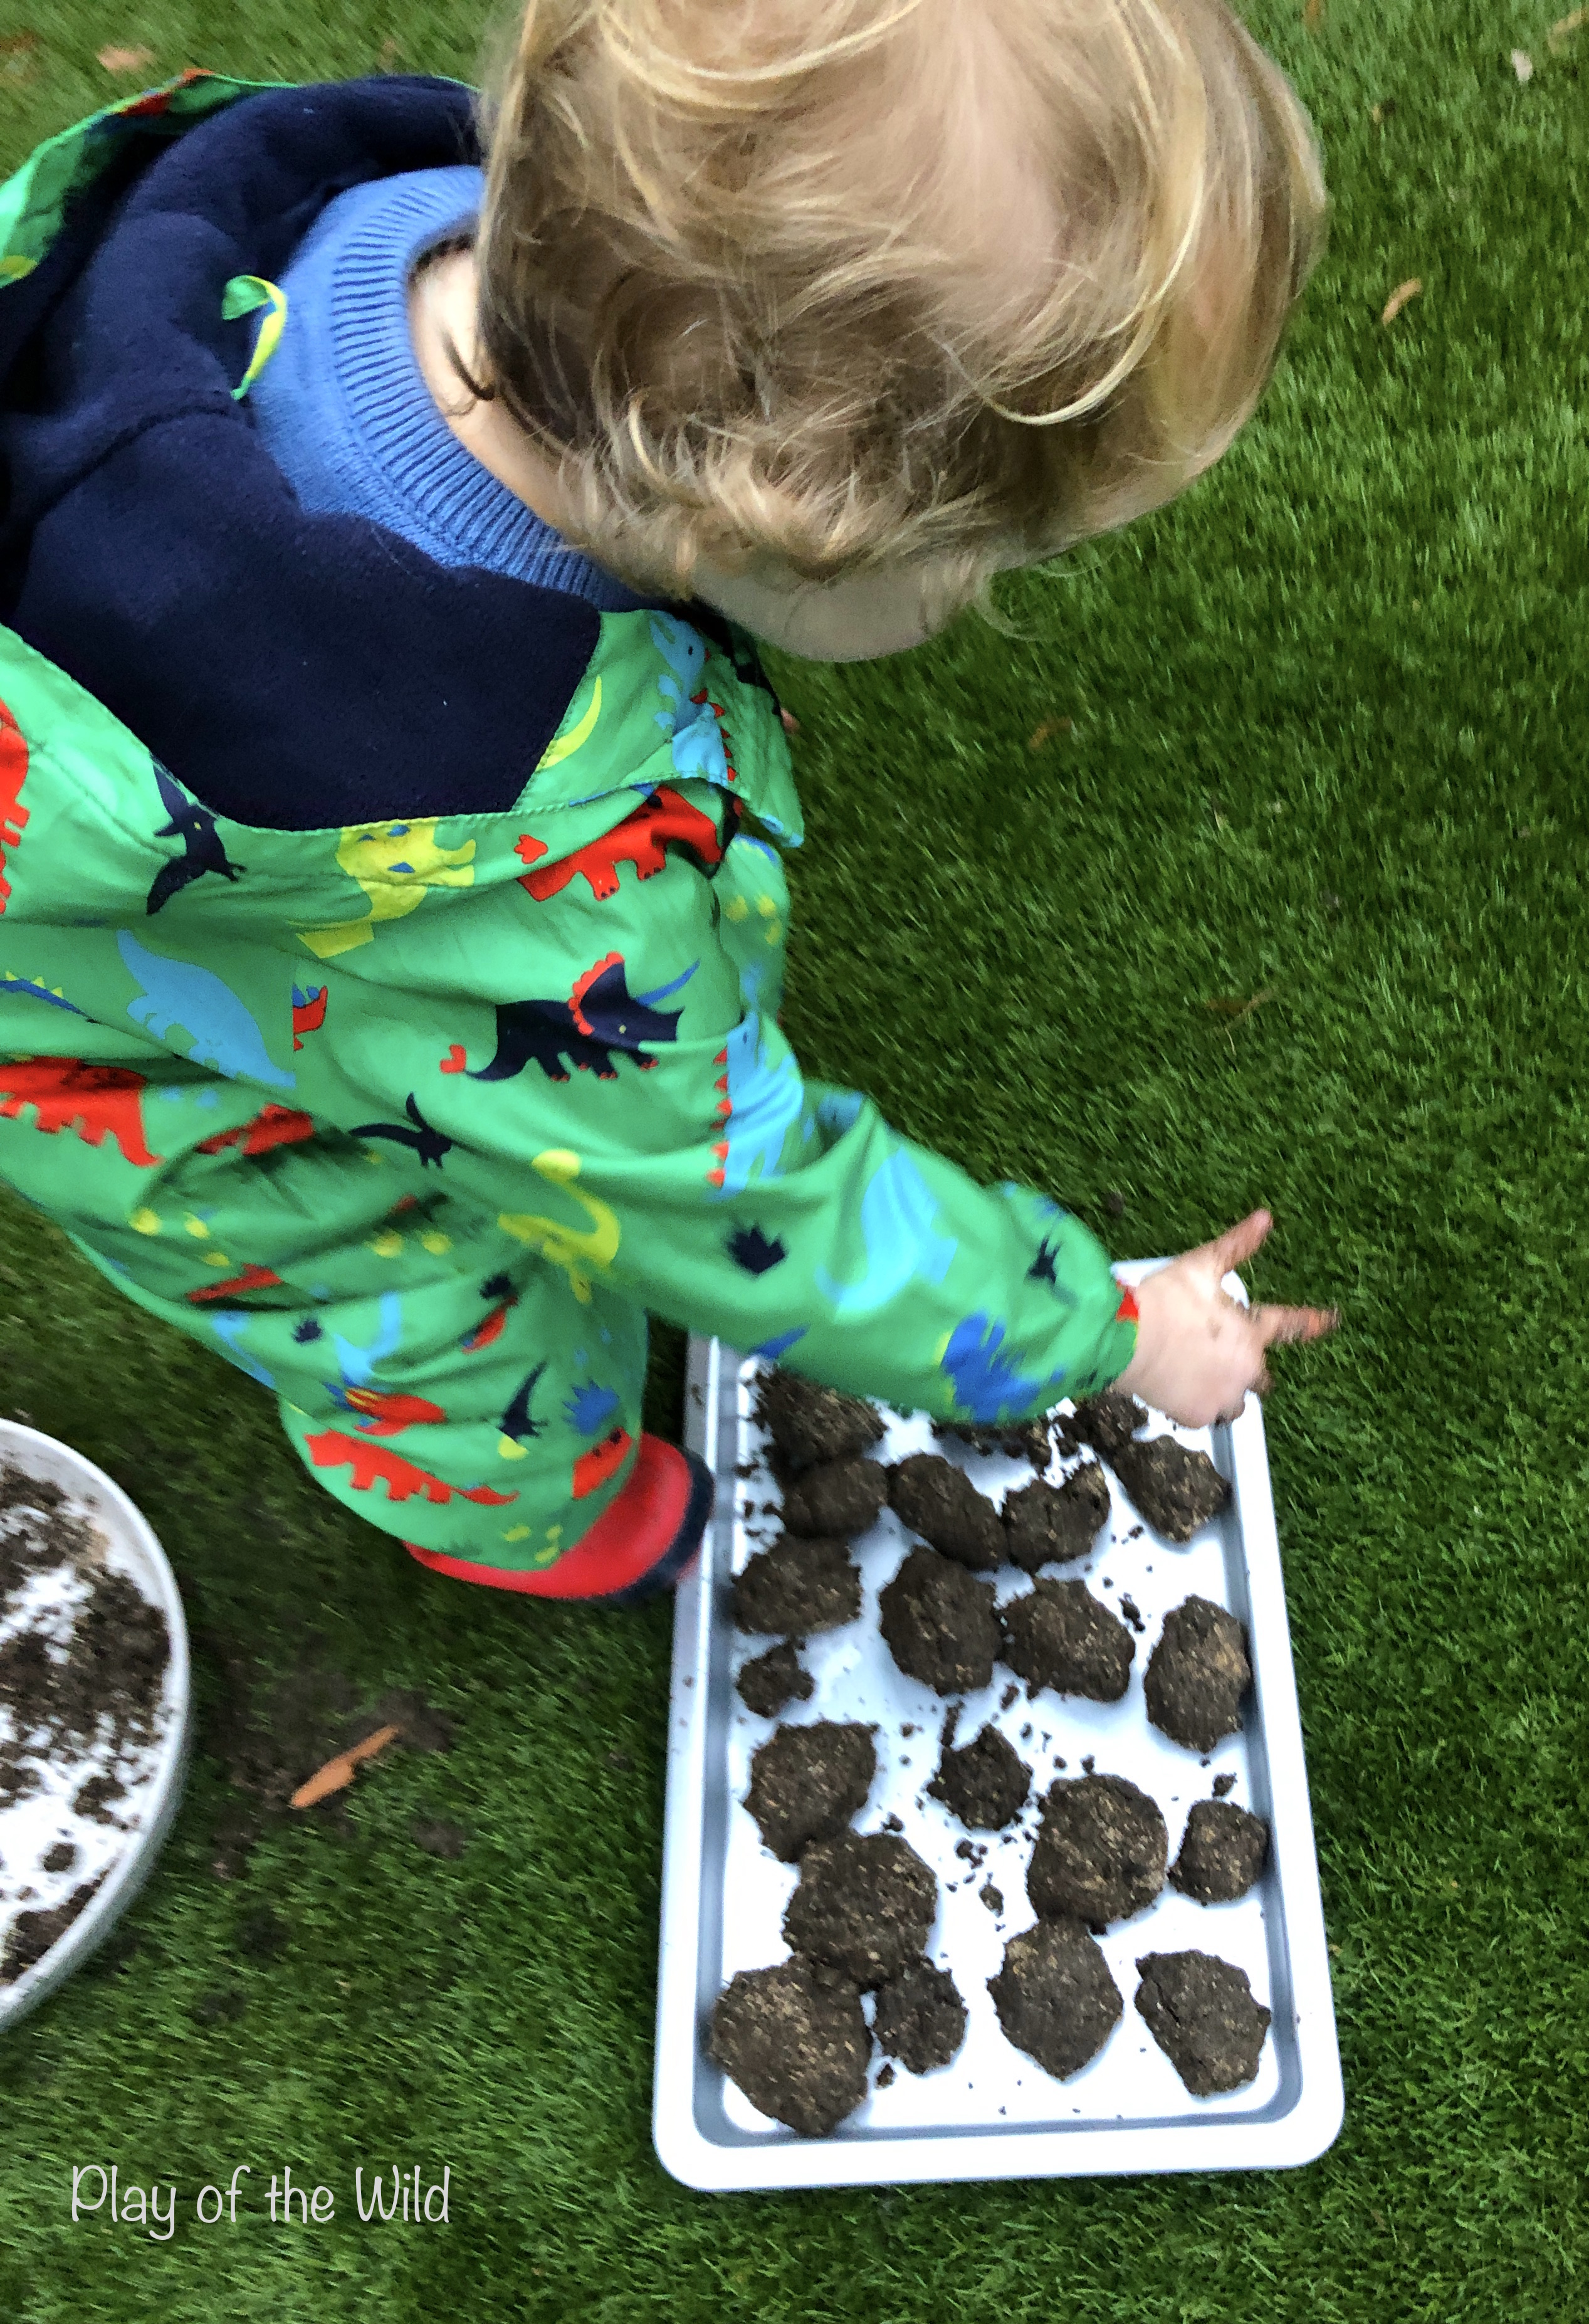 Sowing & Spreading Wild Flowers with Seed Bombs